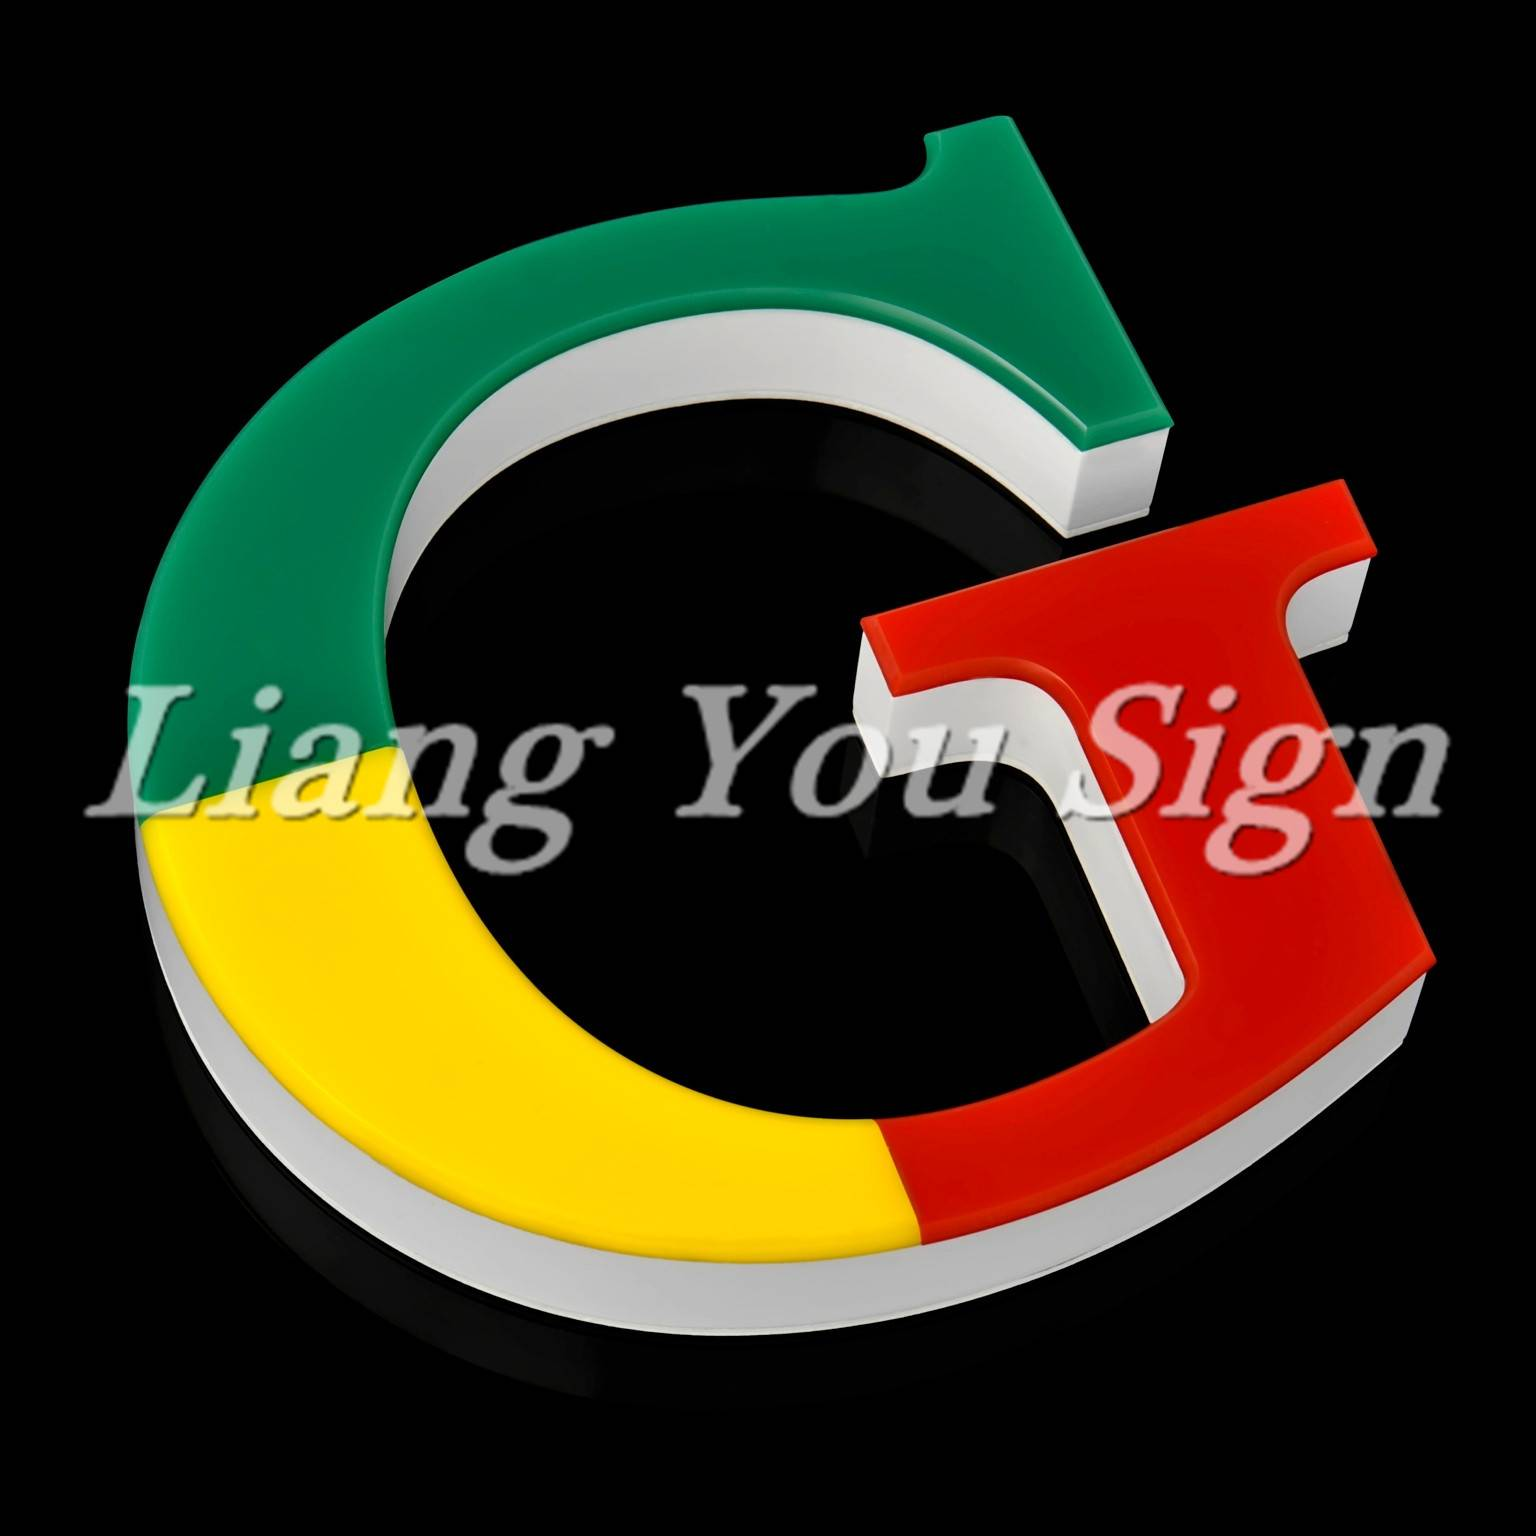 2017 Merry Christmas Acrylic Outdoor Advertising Front-lit built up letter